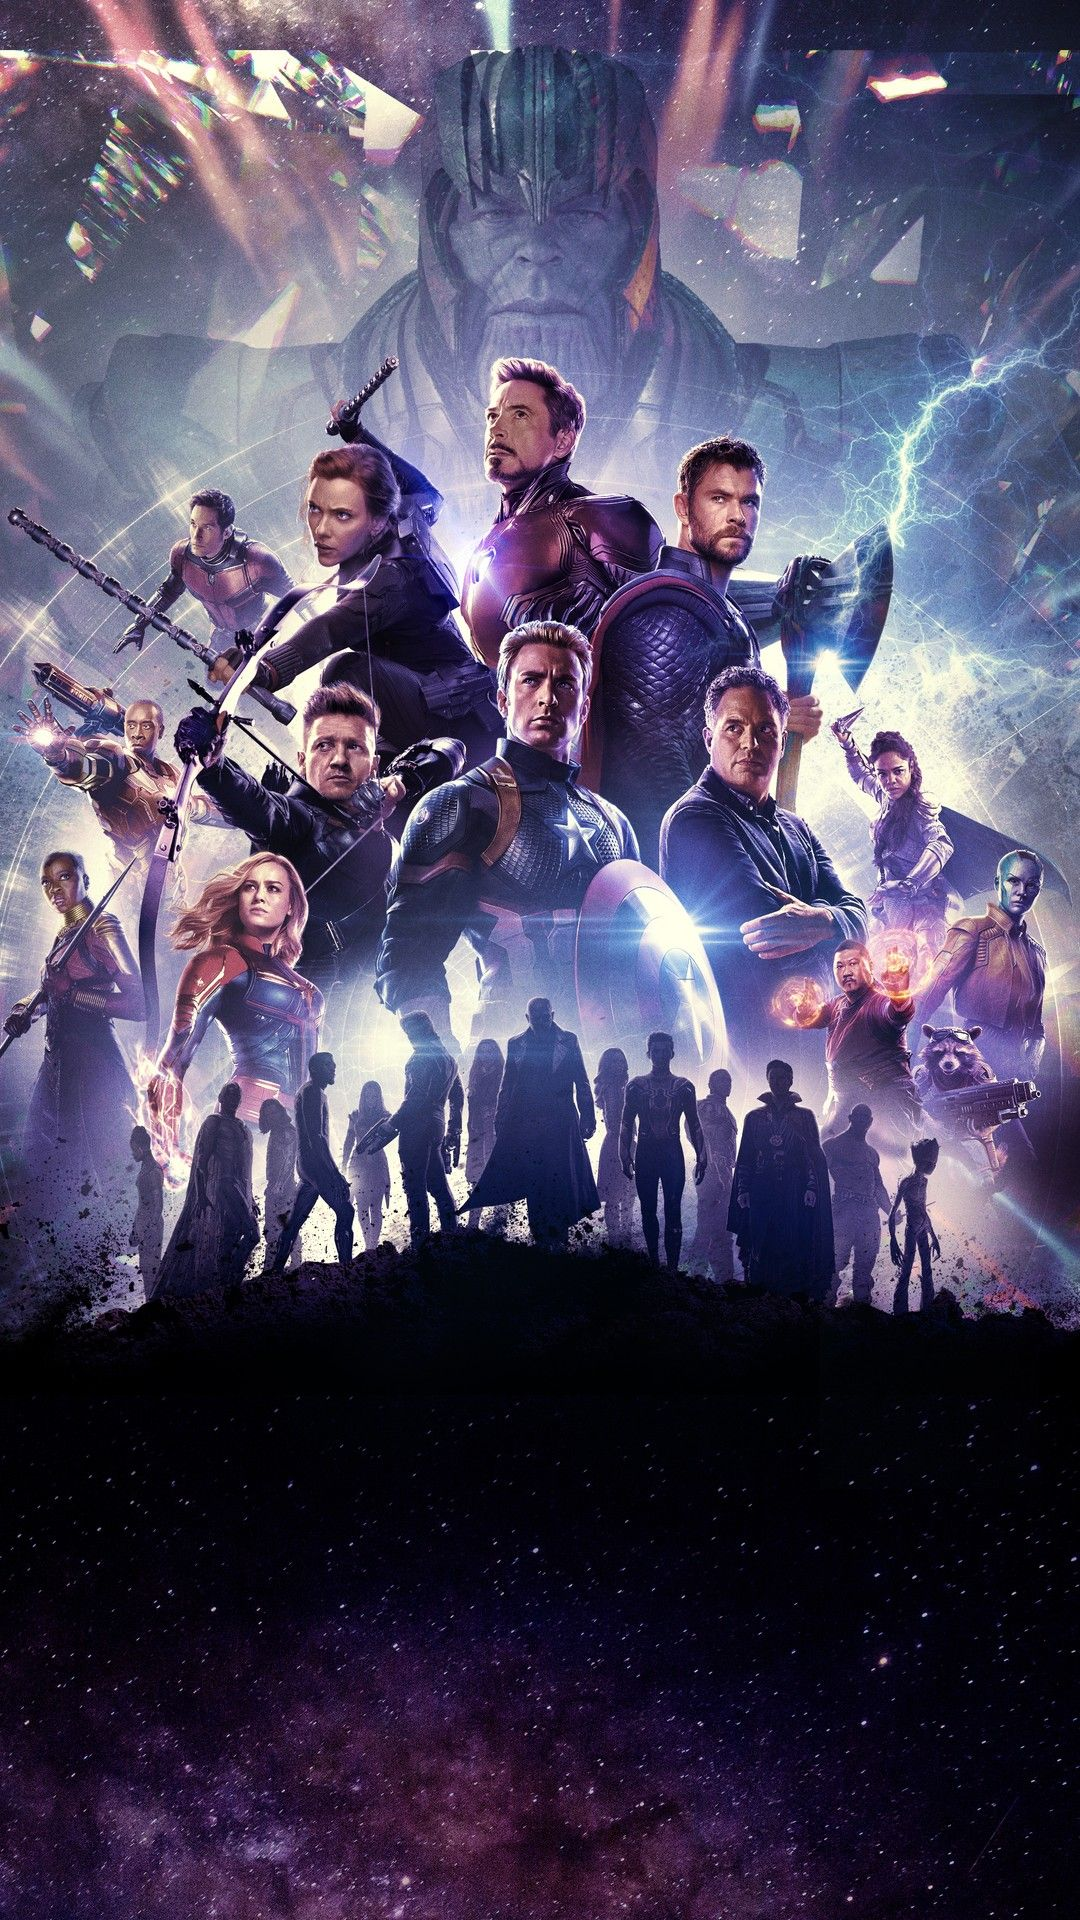 Avengers Endgame 2019 Android Wallpaper Best Movie Poster Wallpaper Hd Marvel Superheroes Marvel Posters Marvel Wallpaper